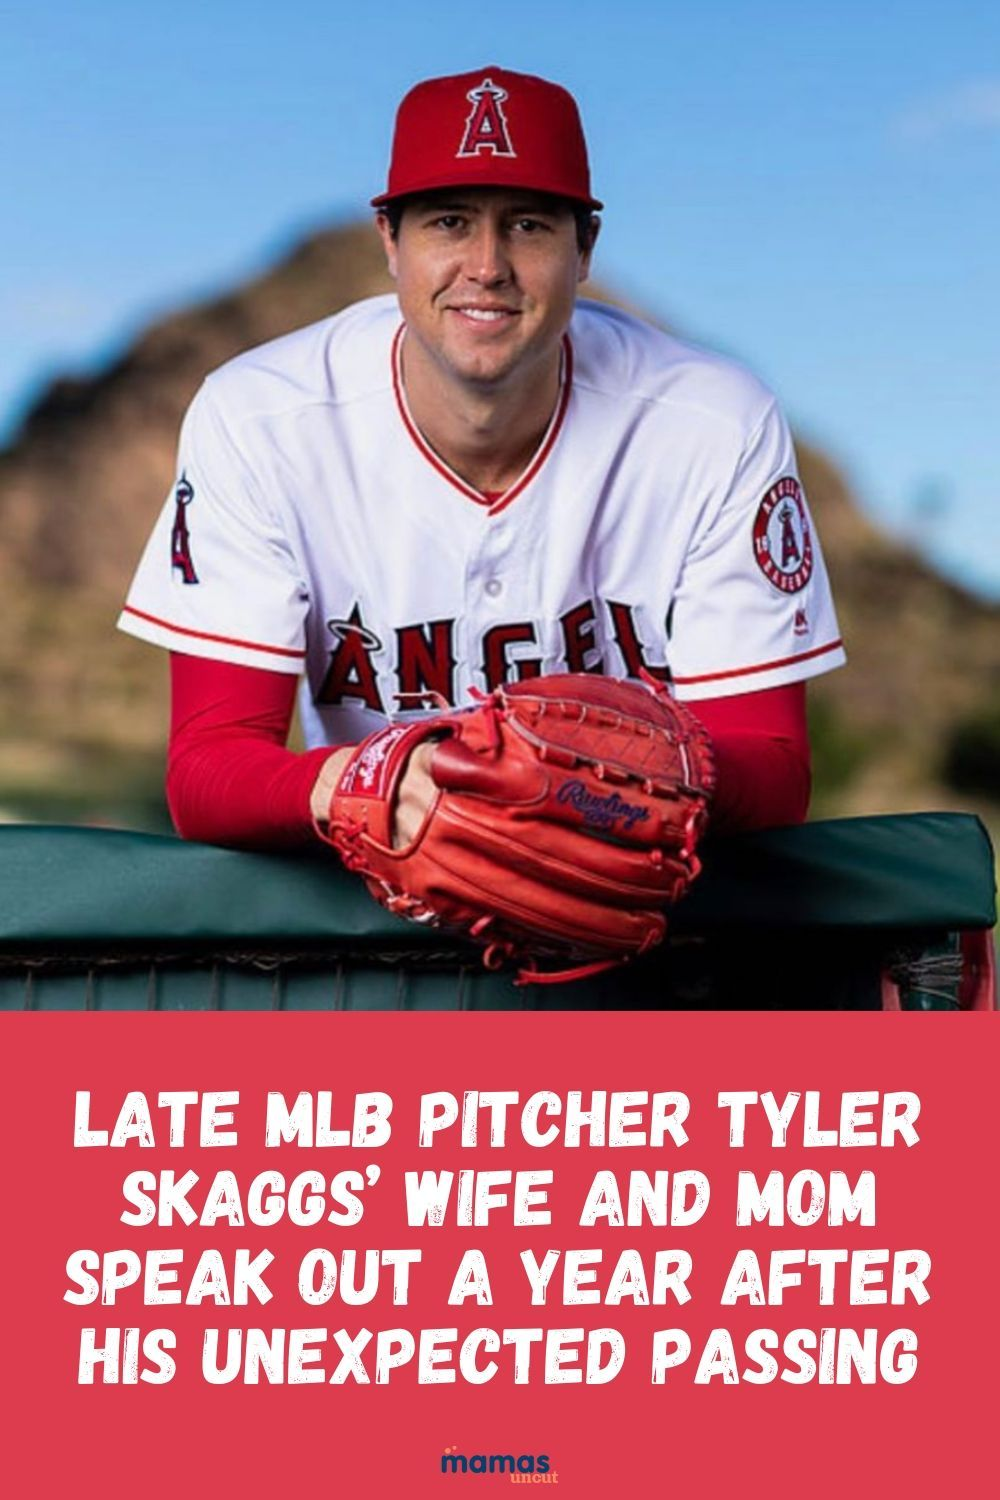 On July 1, 2019, pitcher for the Los Angeles Angels Tyler Skaggs was found dead in a Texas Hotel room. Now his family is speaking out.#TylerSkaggs #MLB